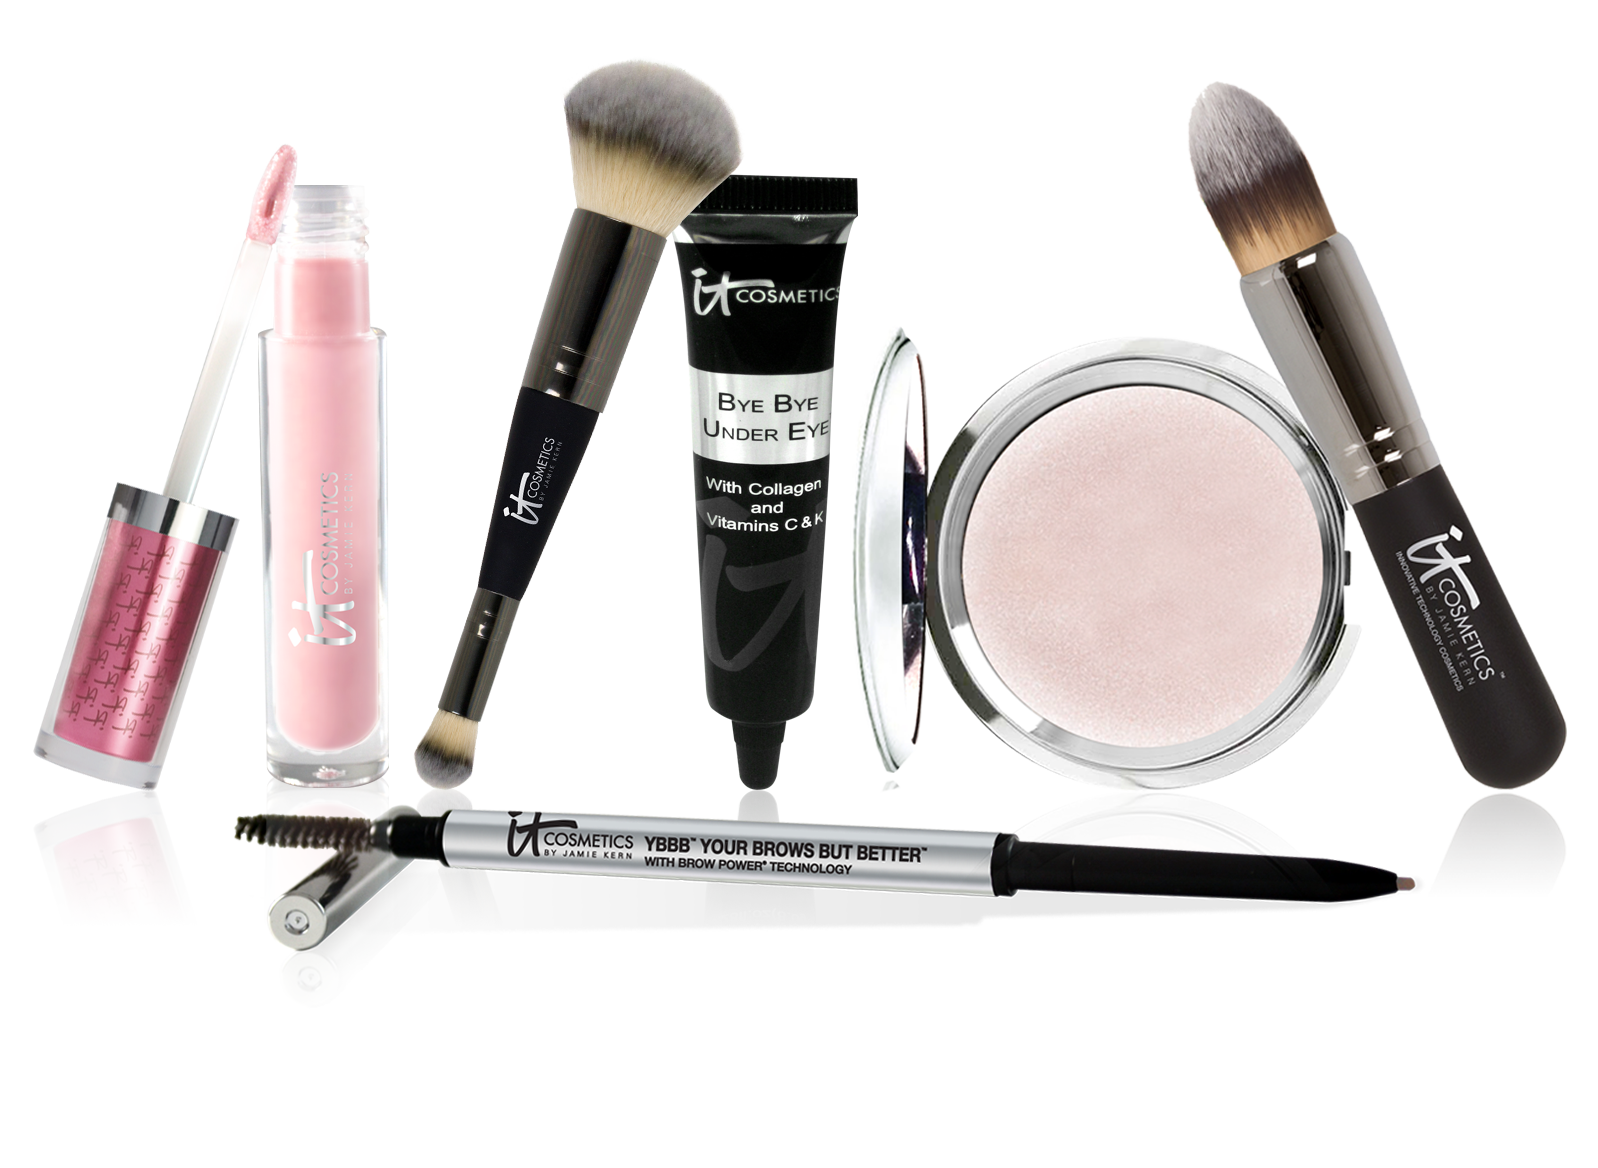 Your Most Beautiful You with iT Cosmetics, July 13th On QVC